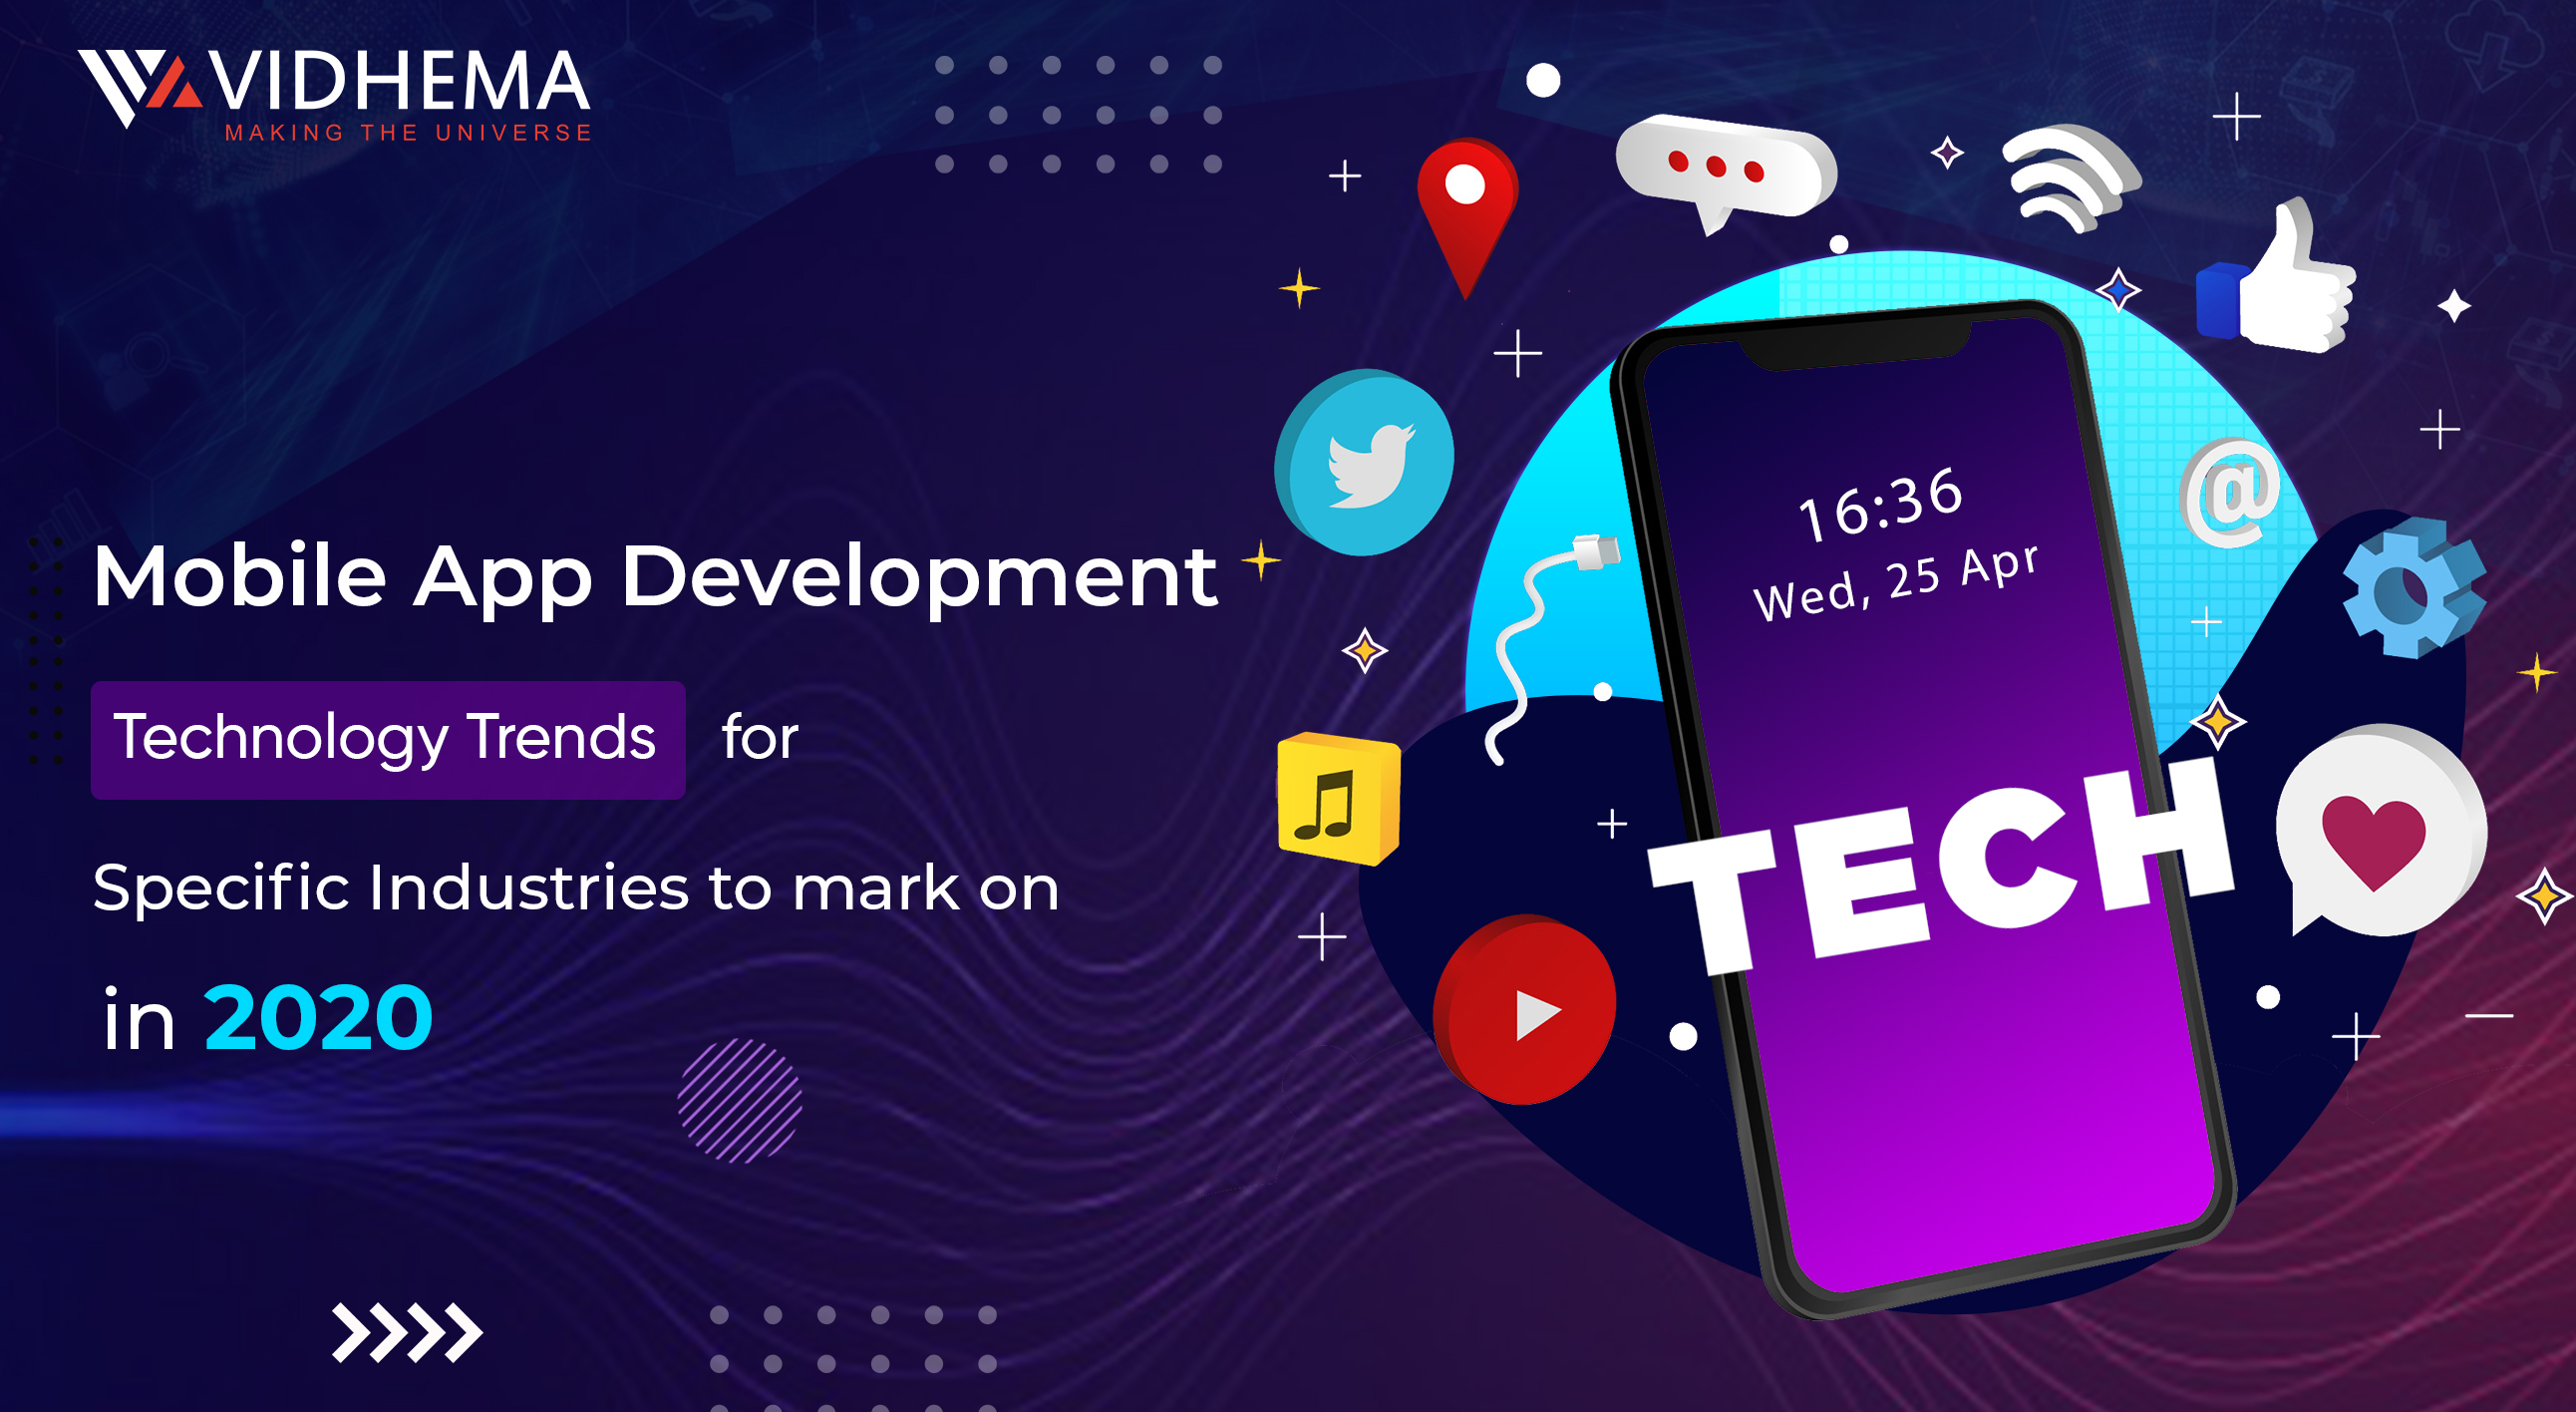 Mobile App Development Technology Trends For Specific Industries To Mark On In 2020